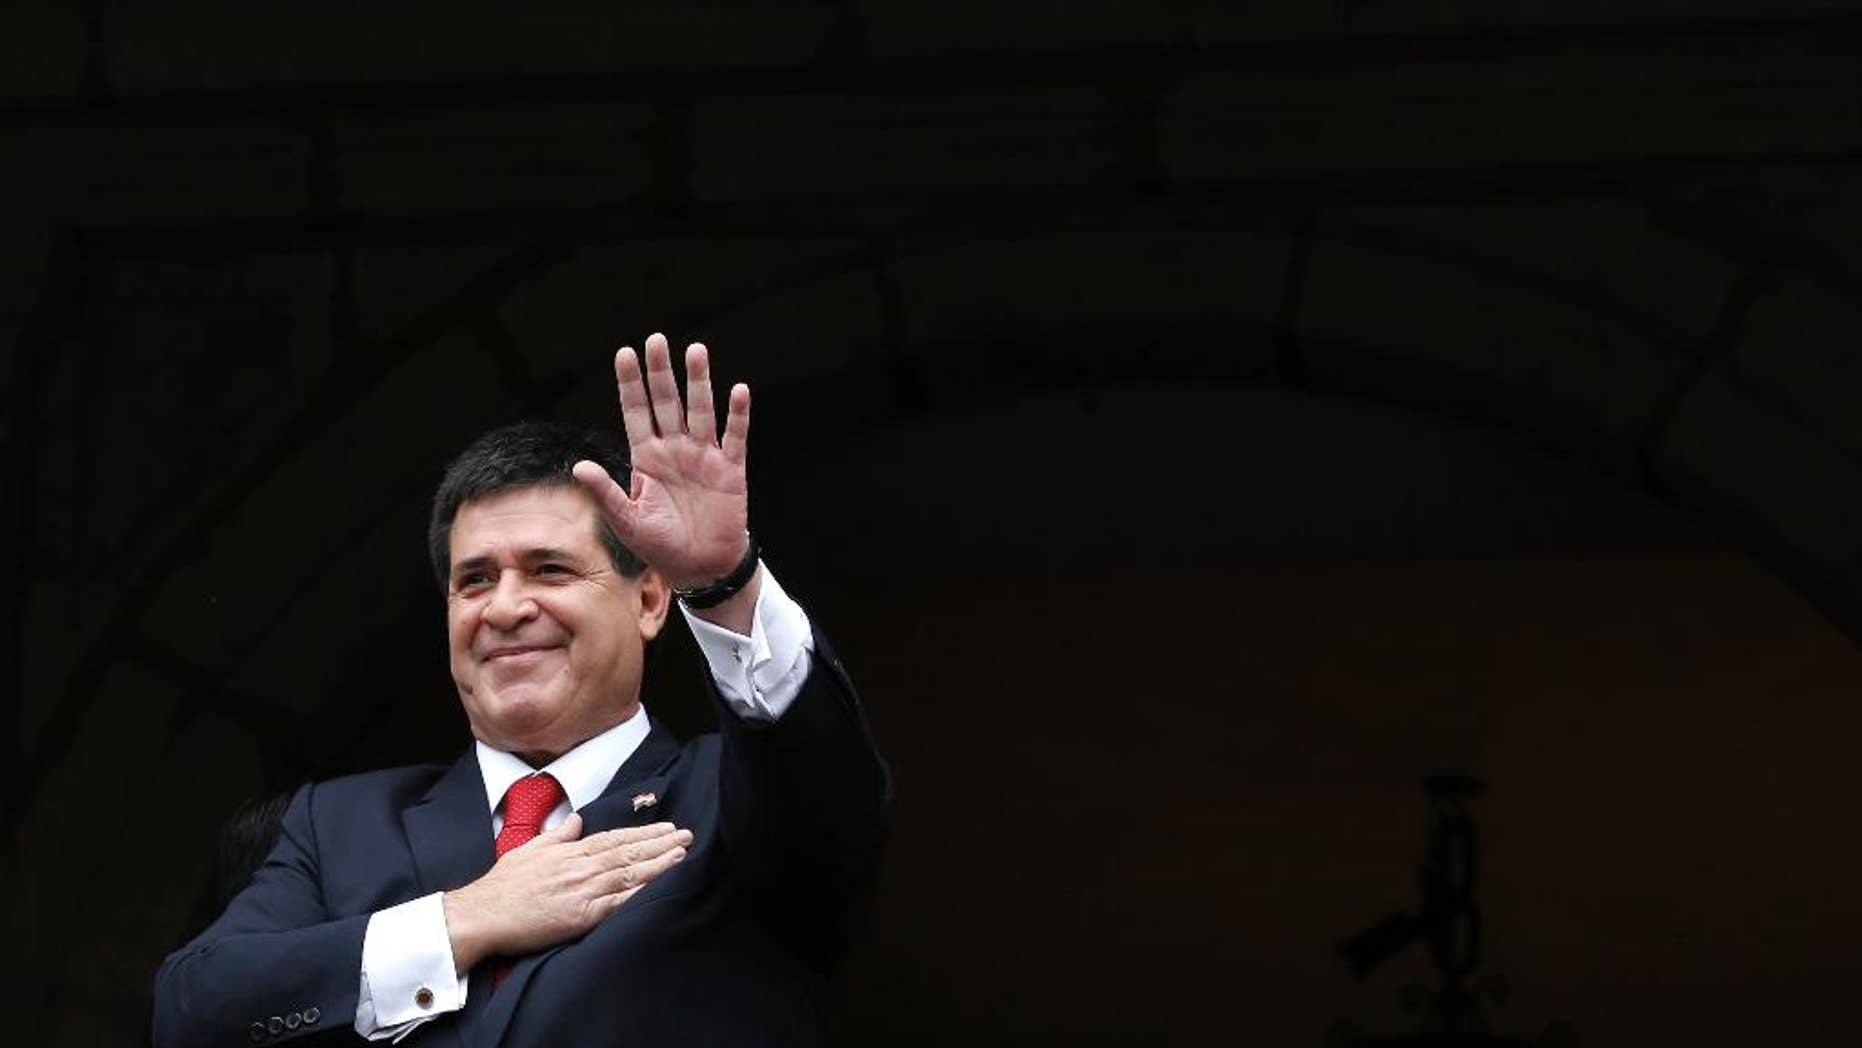 FILE - In this Nov. 21, 2014 file photo, Paraguay's President Horacio Cartes waves from a government palace balcony, in Quito, Ecuador. President Cartes said Monday, April 17, 2017, that he will not be a candidate in the 2018 election even if Congress approves a constitutional amendment to allow a second term. (AP Photo/Dolores Ochoa, File)